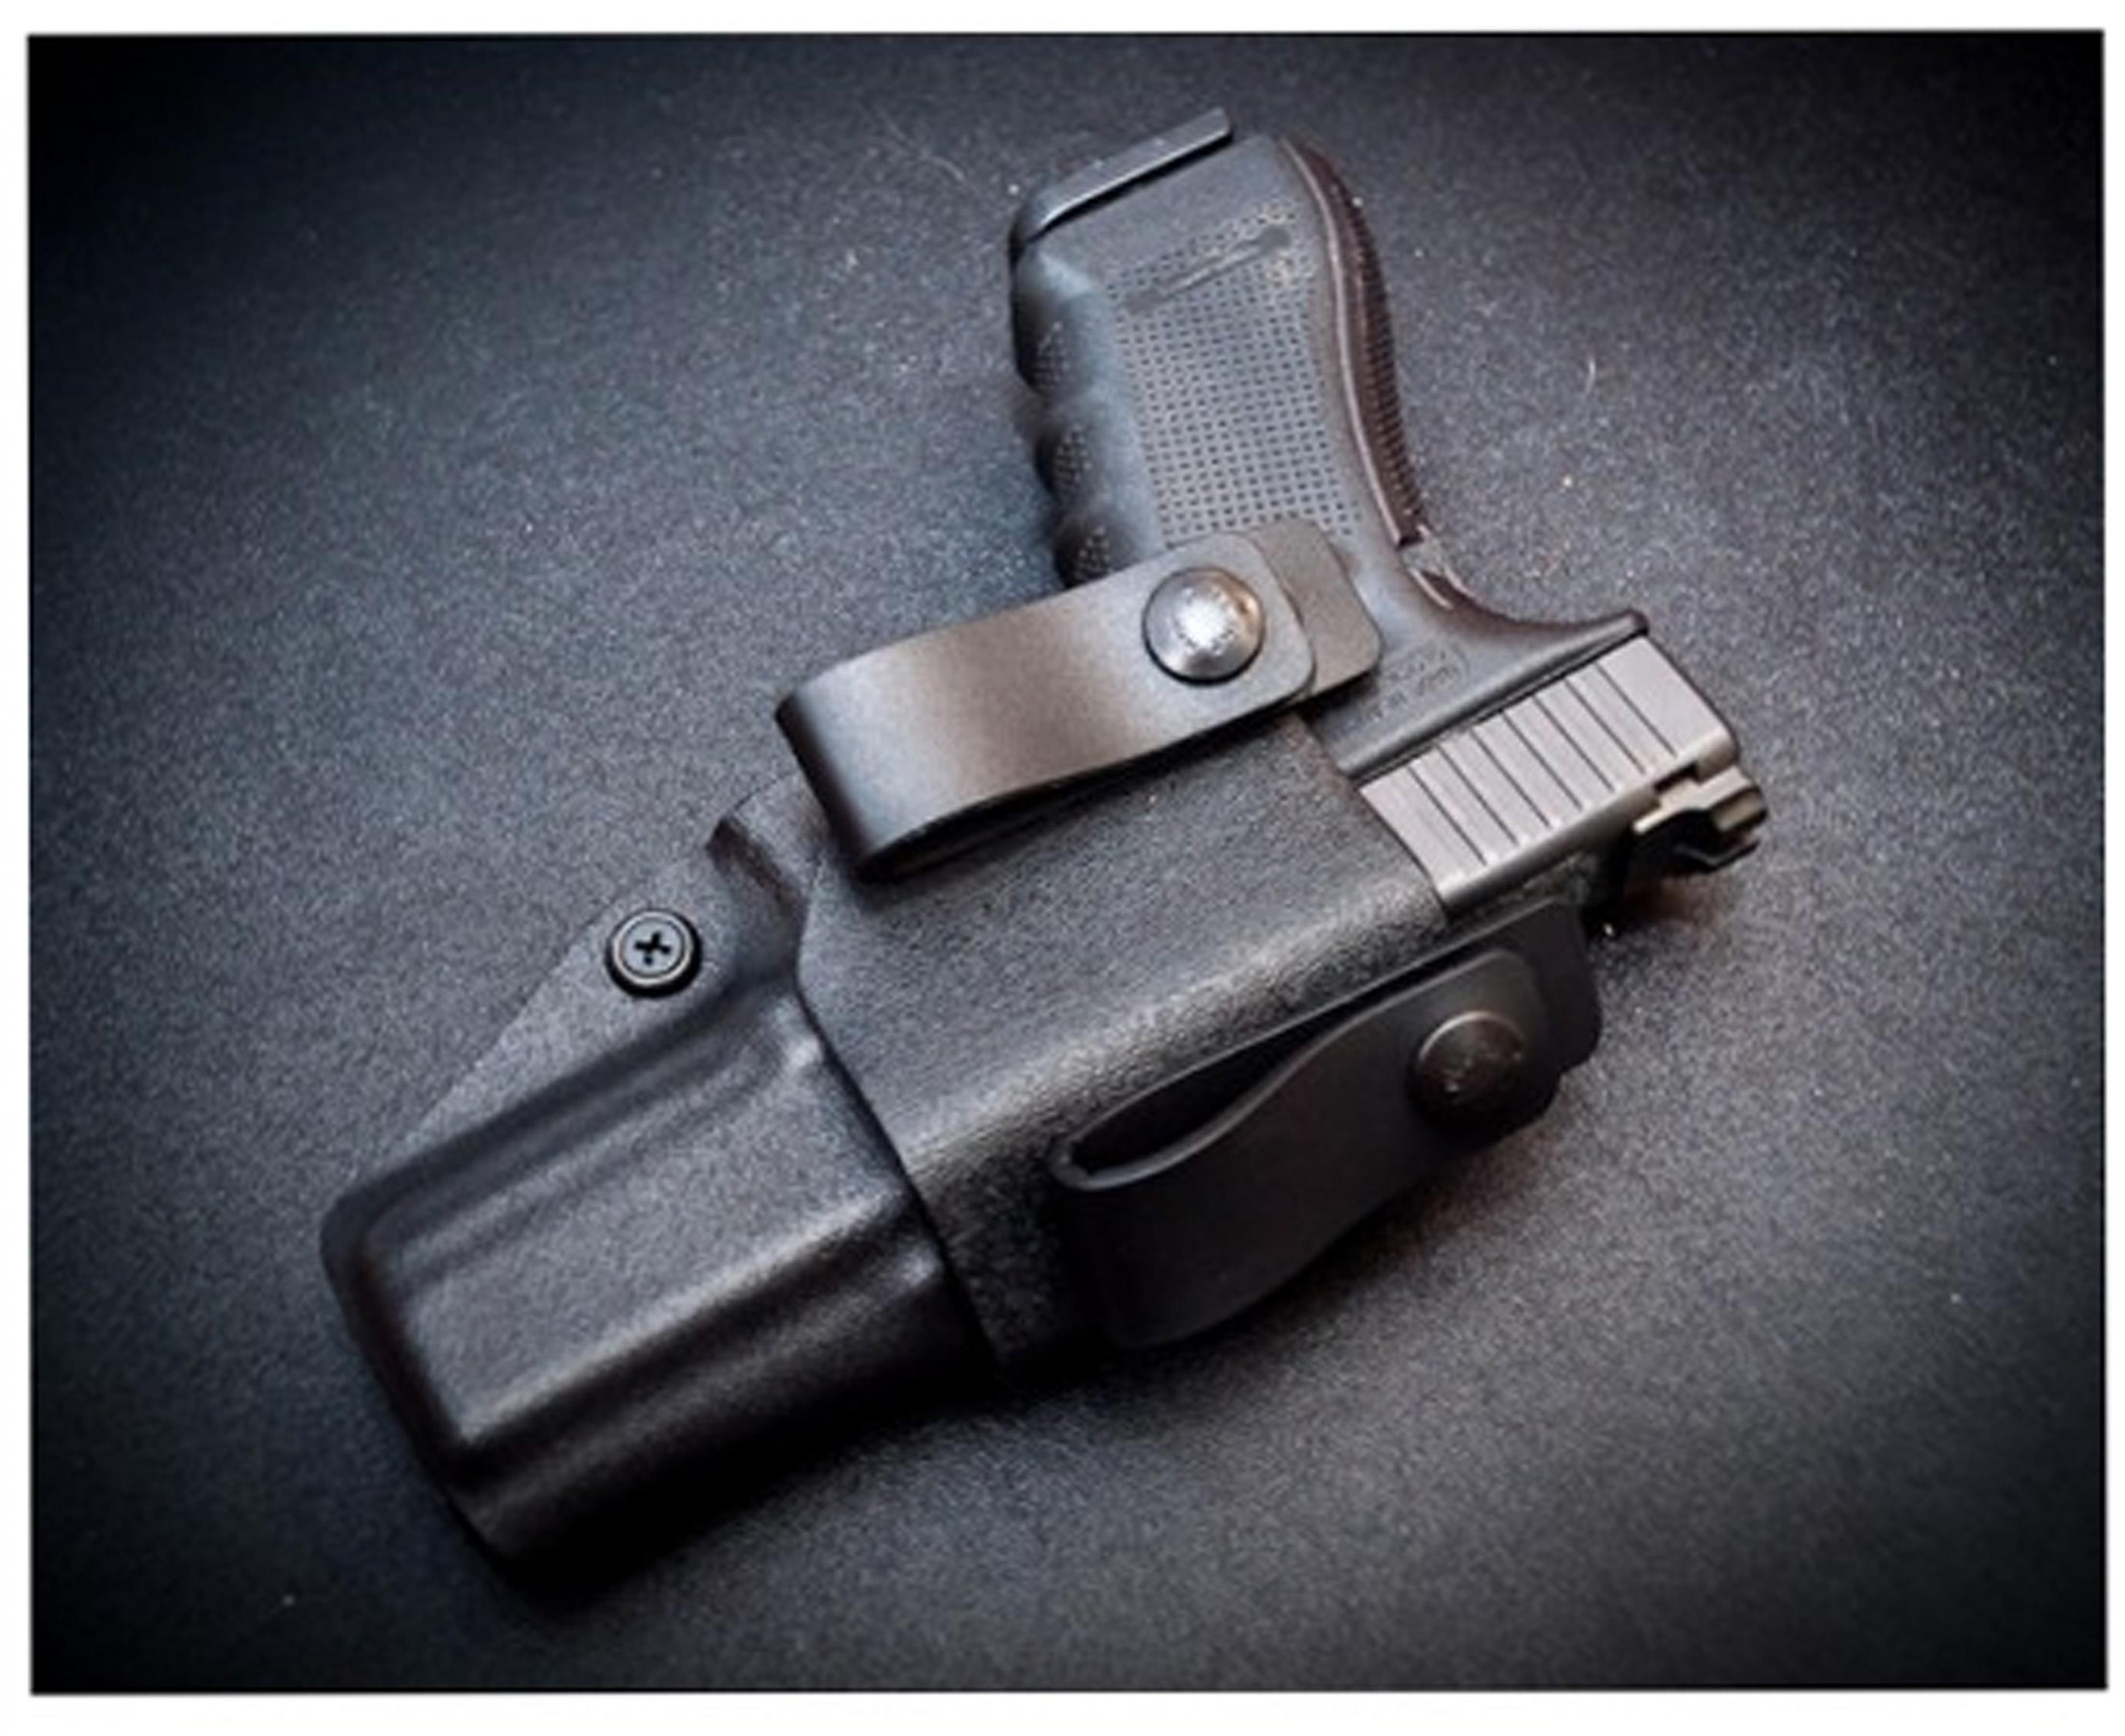 Cane & Derby PIC (Practical Internal Carry) System Kydex Holster-cane-derby-pic.jpg